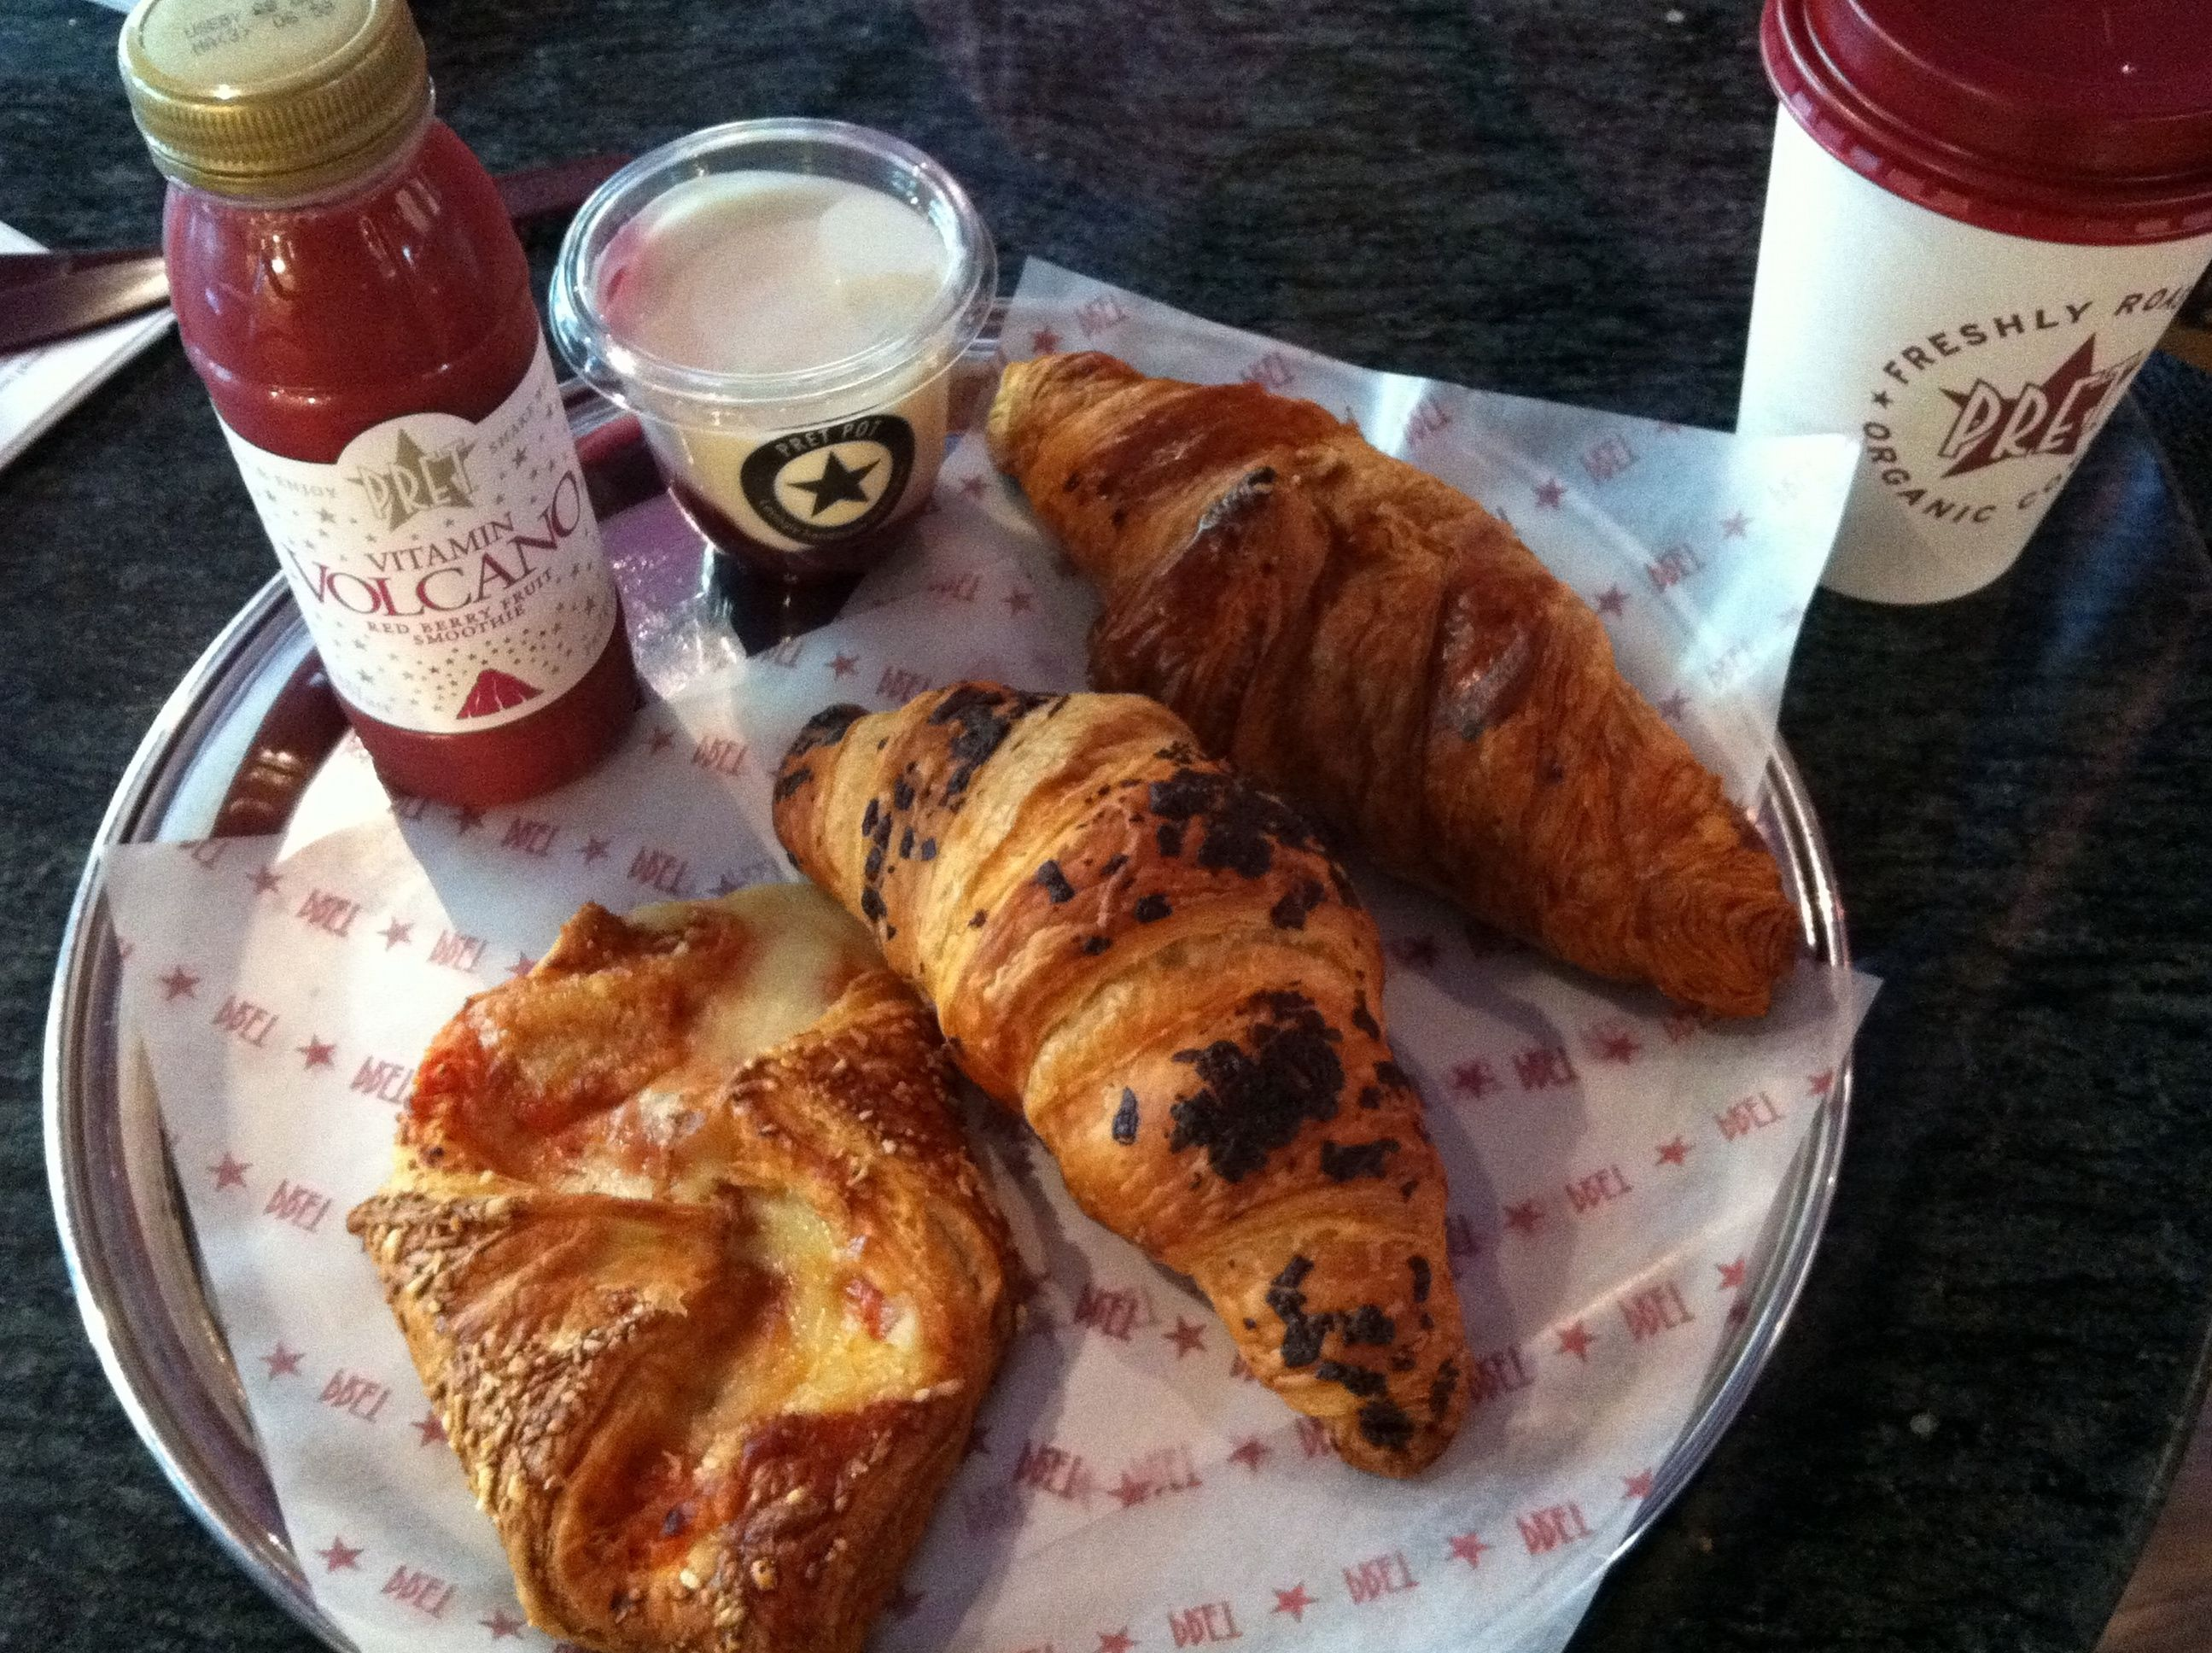 Breakfast pretty much everyday from Pret a Manger, London